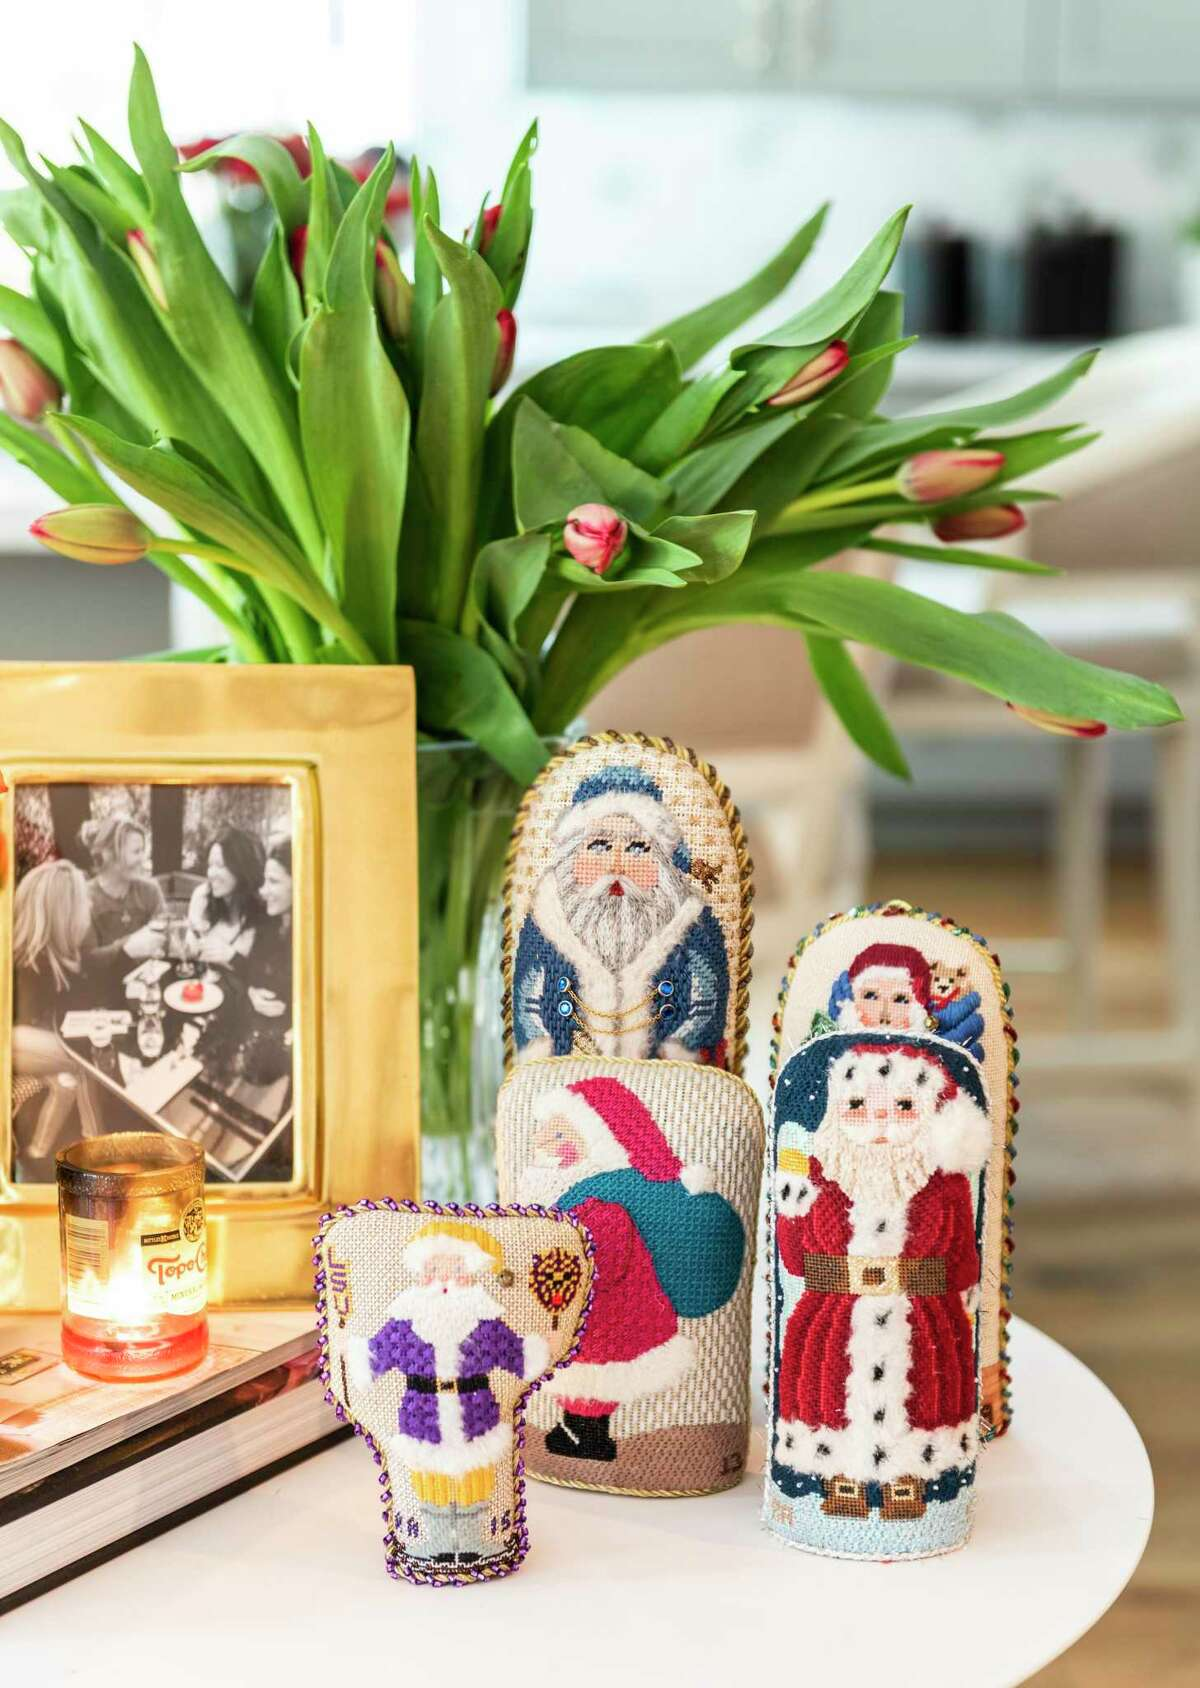 These cute needlepoint figures sit on a side table.